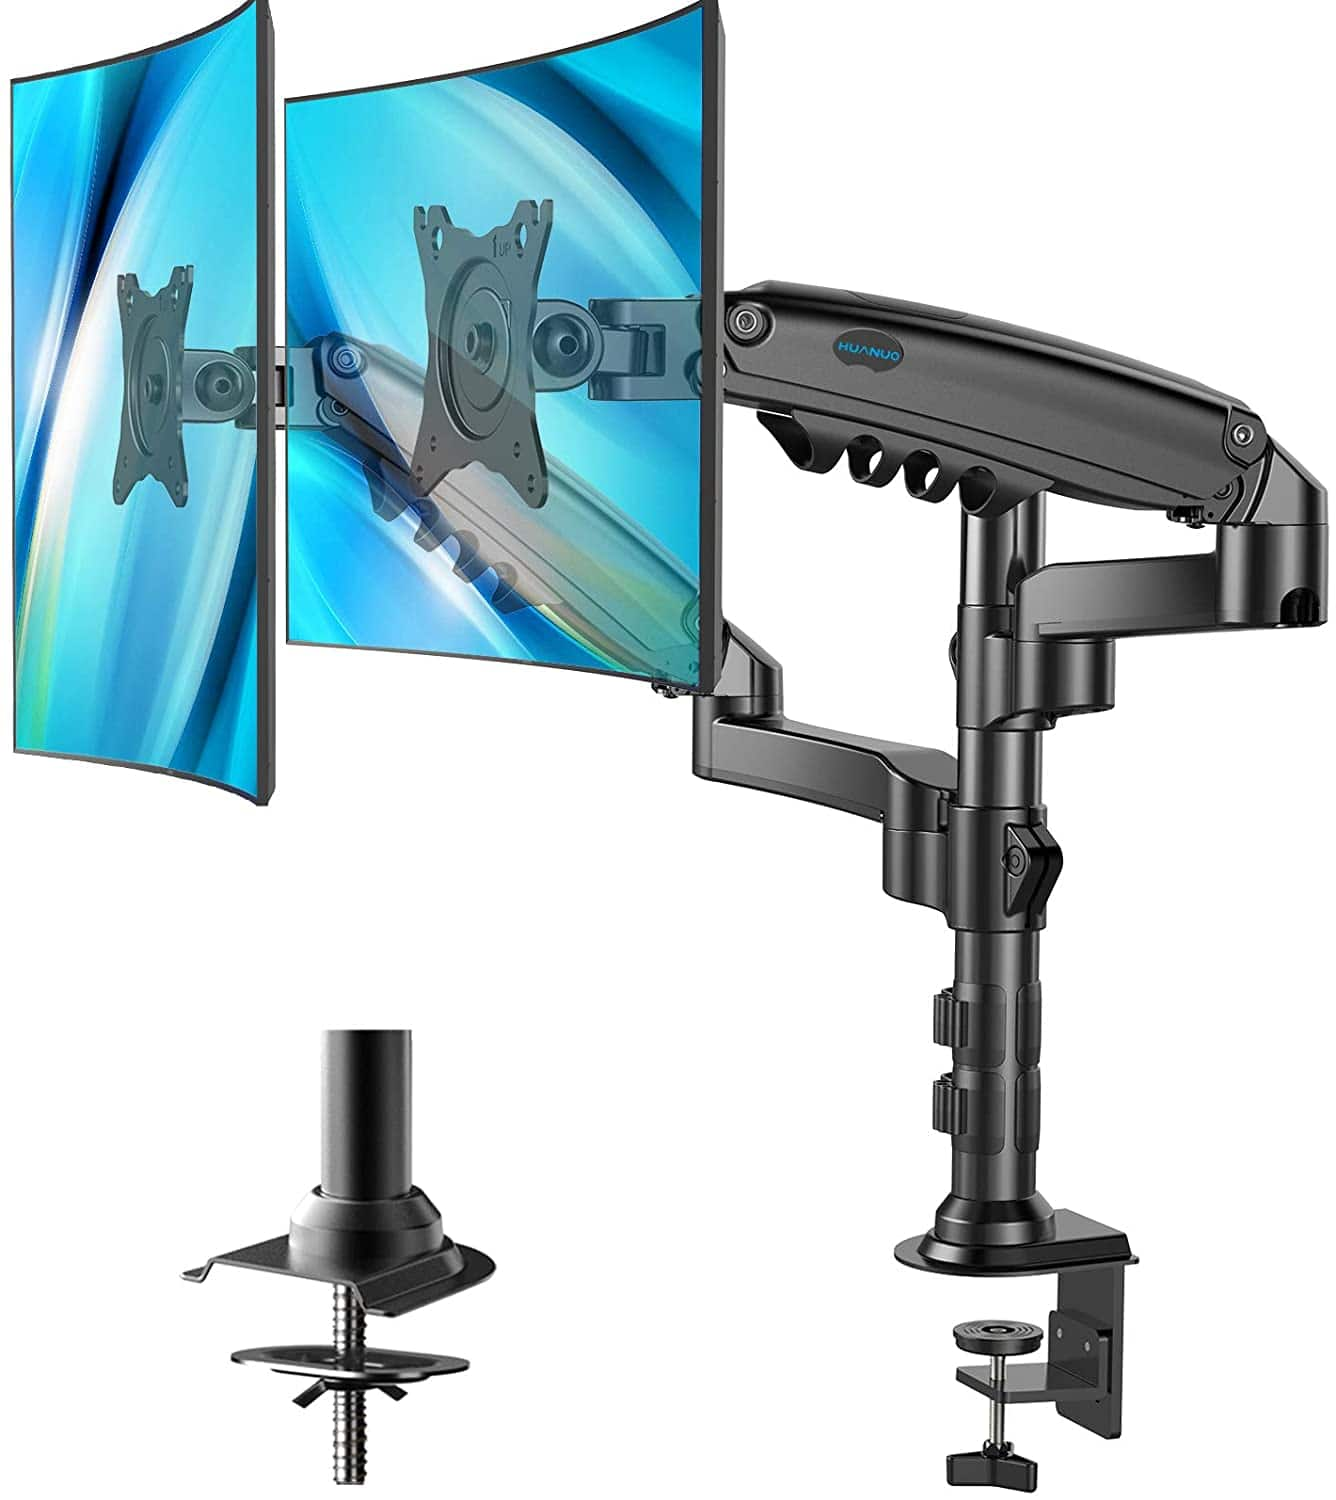 Dual Monitor Stand - Height Adjustable Gas Spring Double Arm Monitor Mount Desk Stand Fit Two 17 to 32 inch Screens with Clamp, Grommet Mounting Base $41.99 + FS